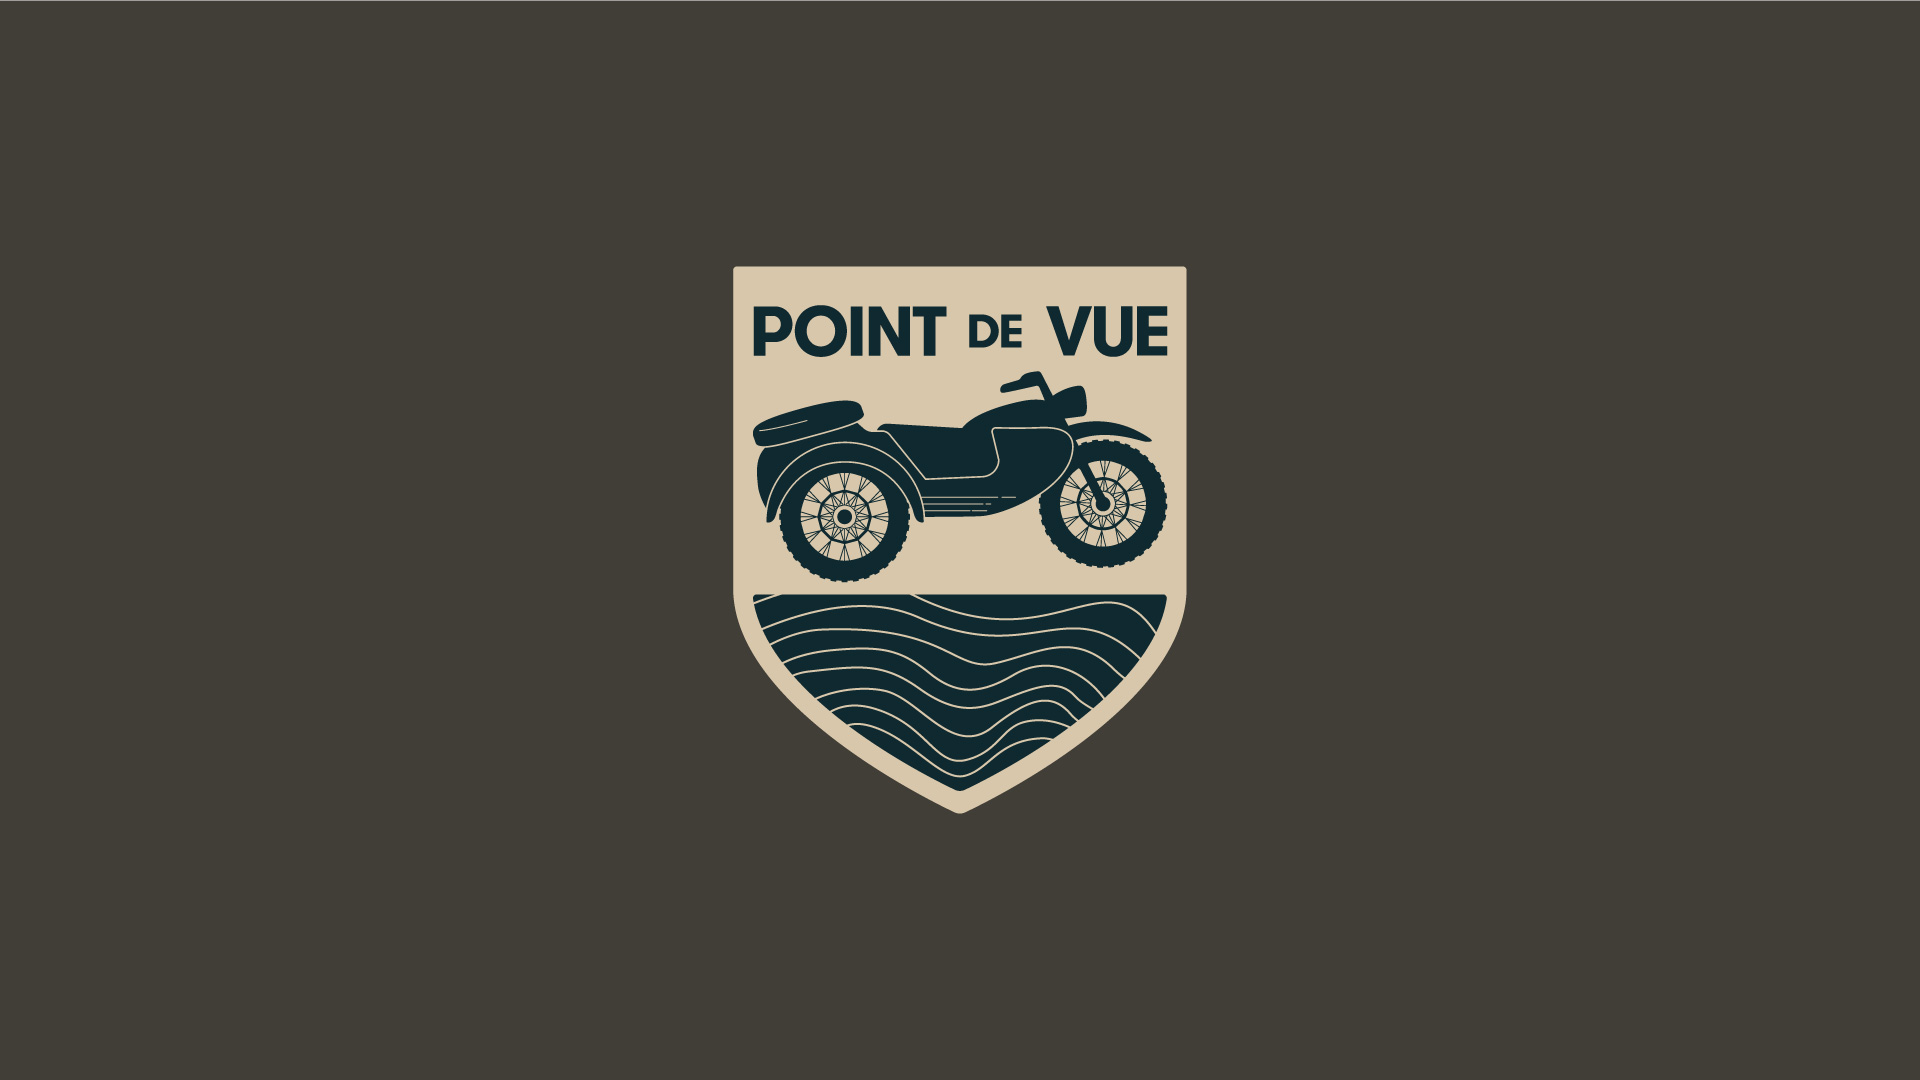 Point-de-vue_Ami-tele_Hover_German_Moreno_Motion-Designer_Canada_11@2x